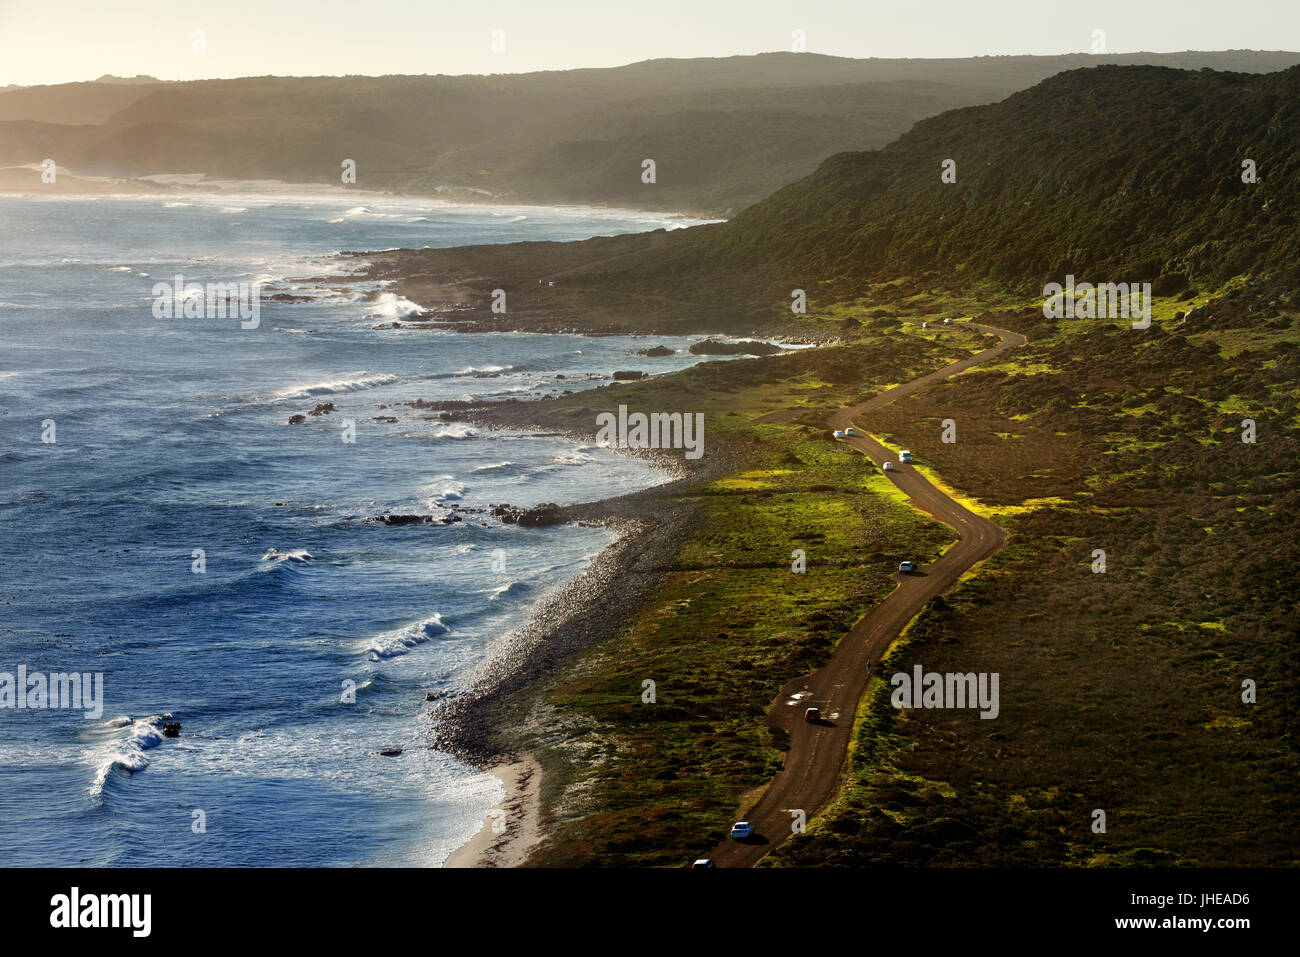 Road in Cape of Good Hope in sunset, South Africa, Western Cape, Cape of Good Hope National Park - Stock Image